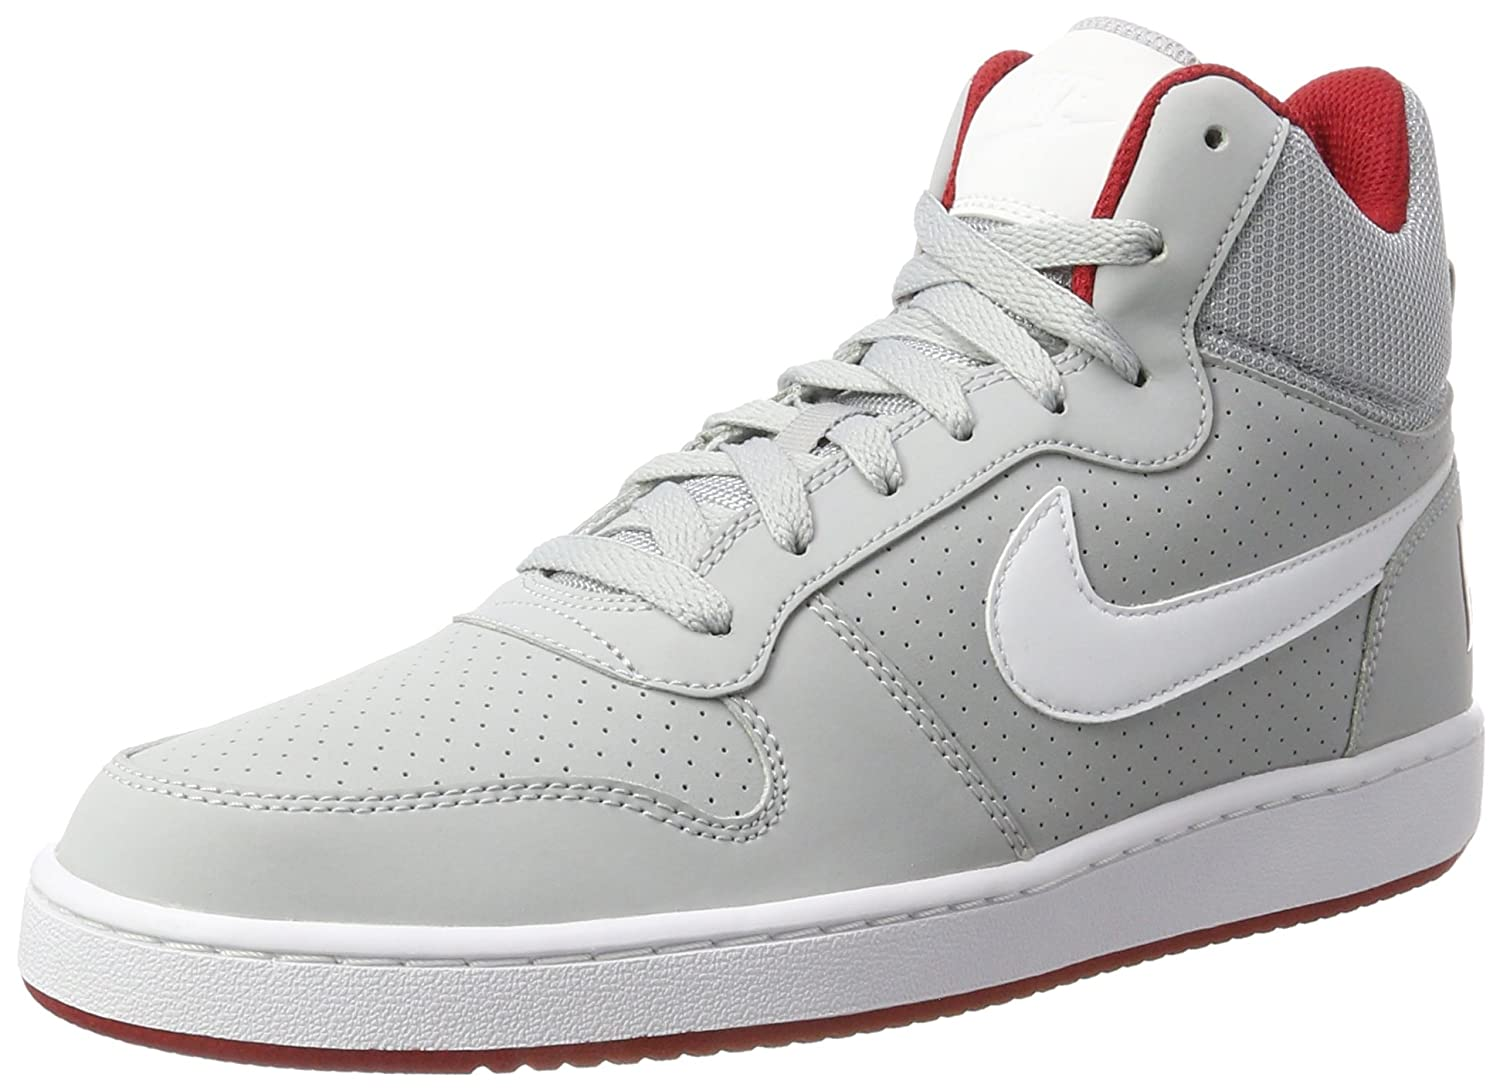 NIKE Men's Court Borough Mid Basketball Shoes B01M6A017V 9.5 D(M) US|Wolf Grey/White/Gym Red